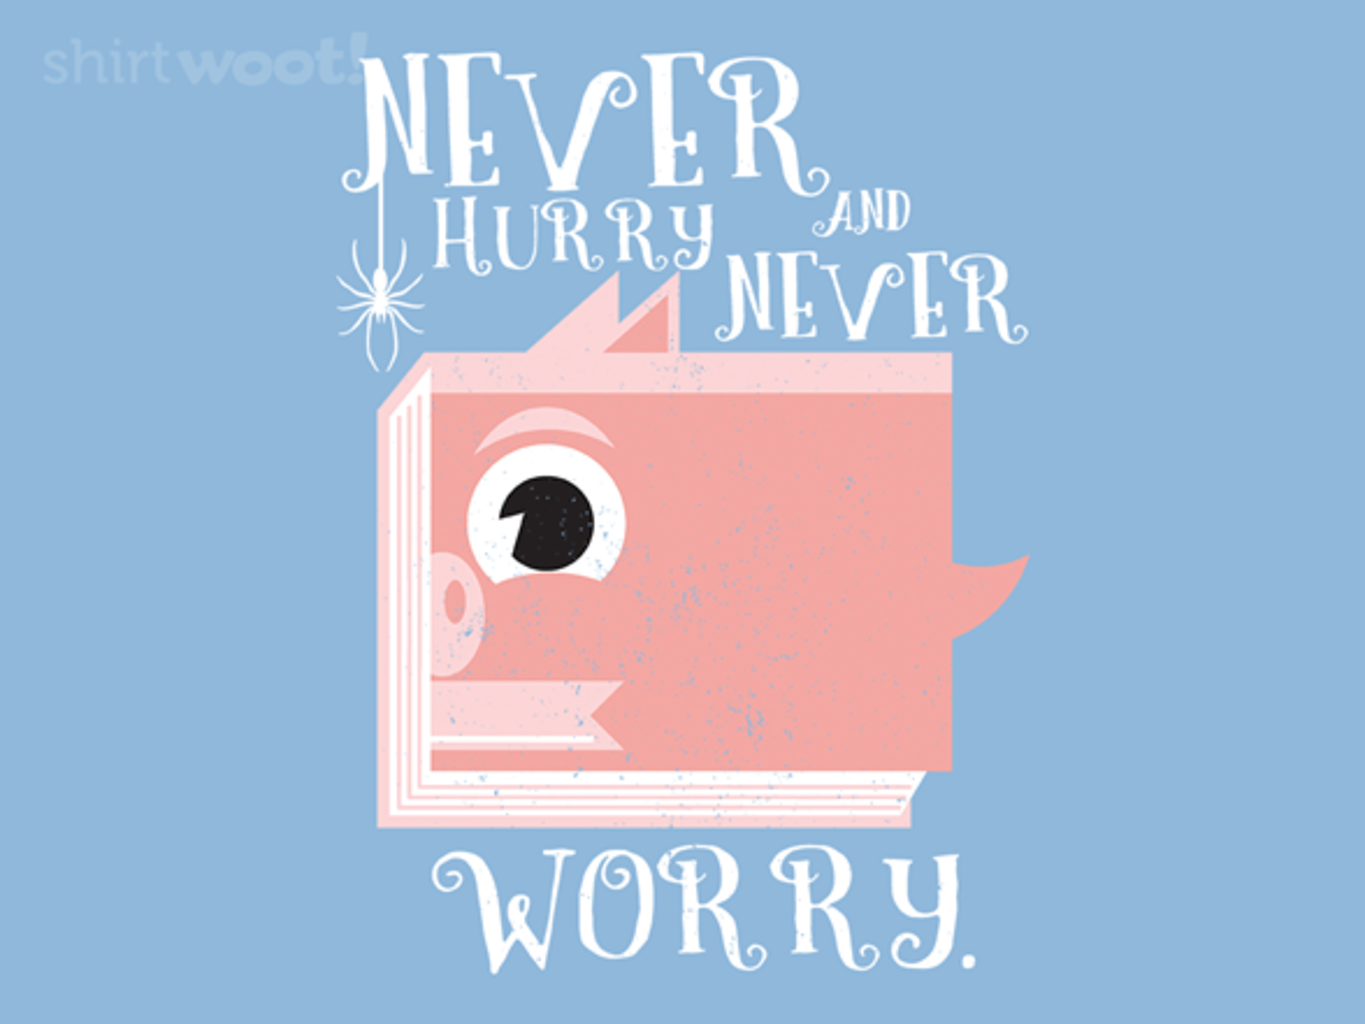 Woot!: Never Hurry